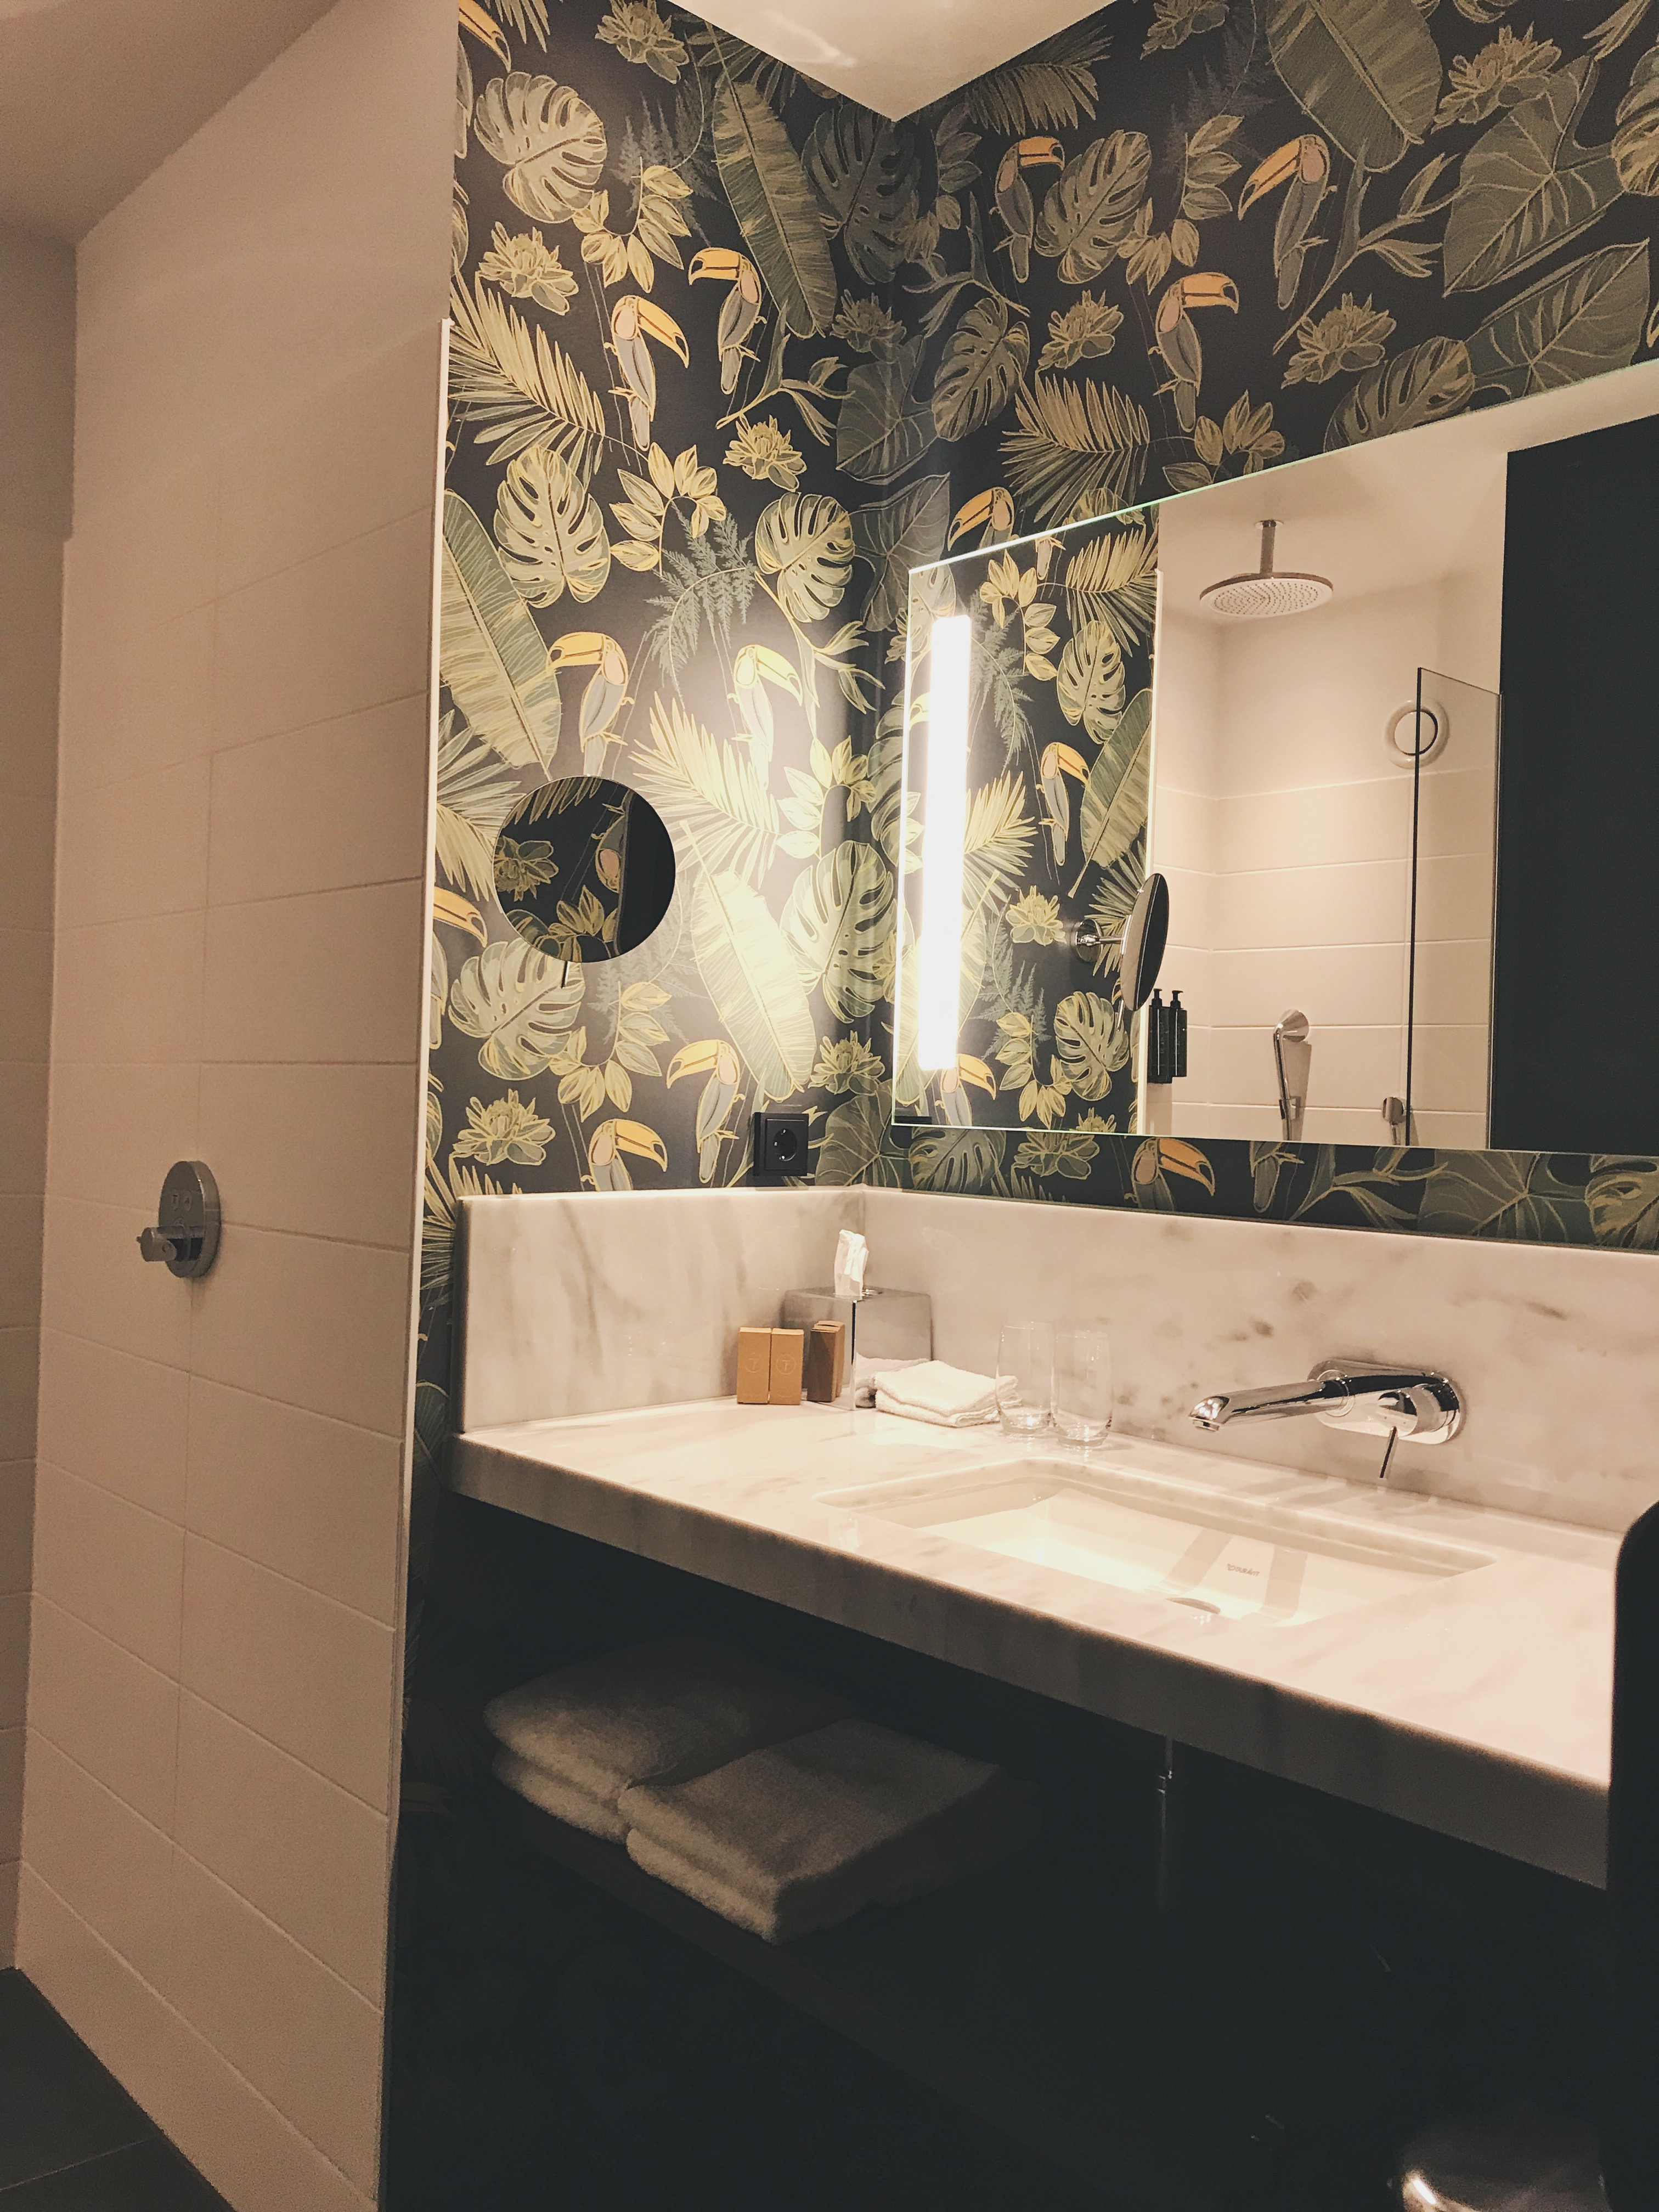 Van der Valk hotel - Bathroom